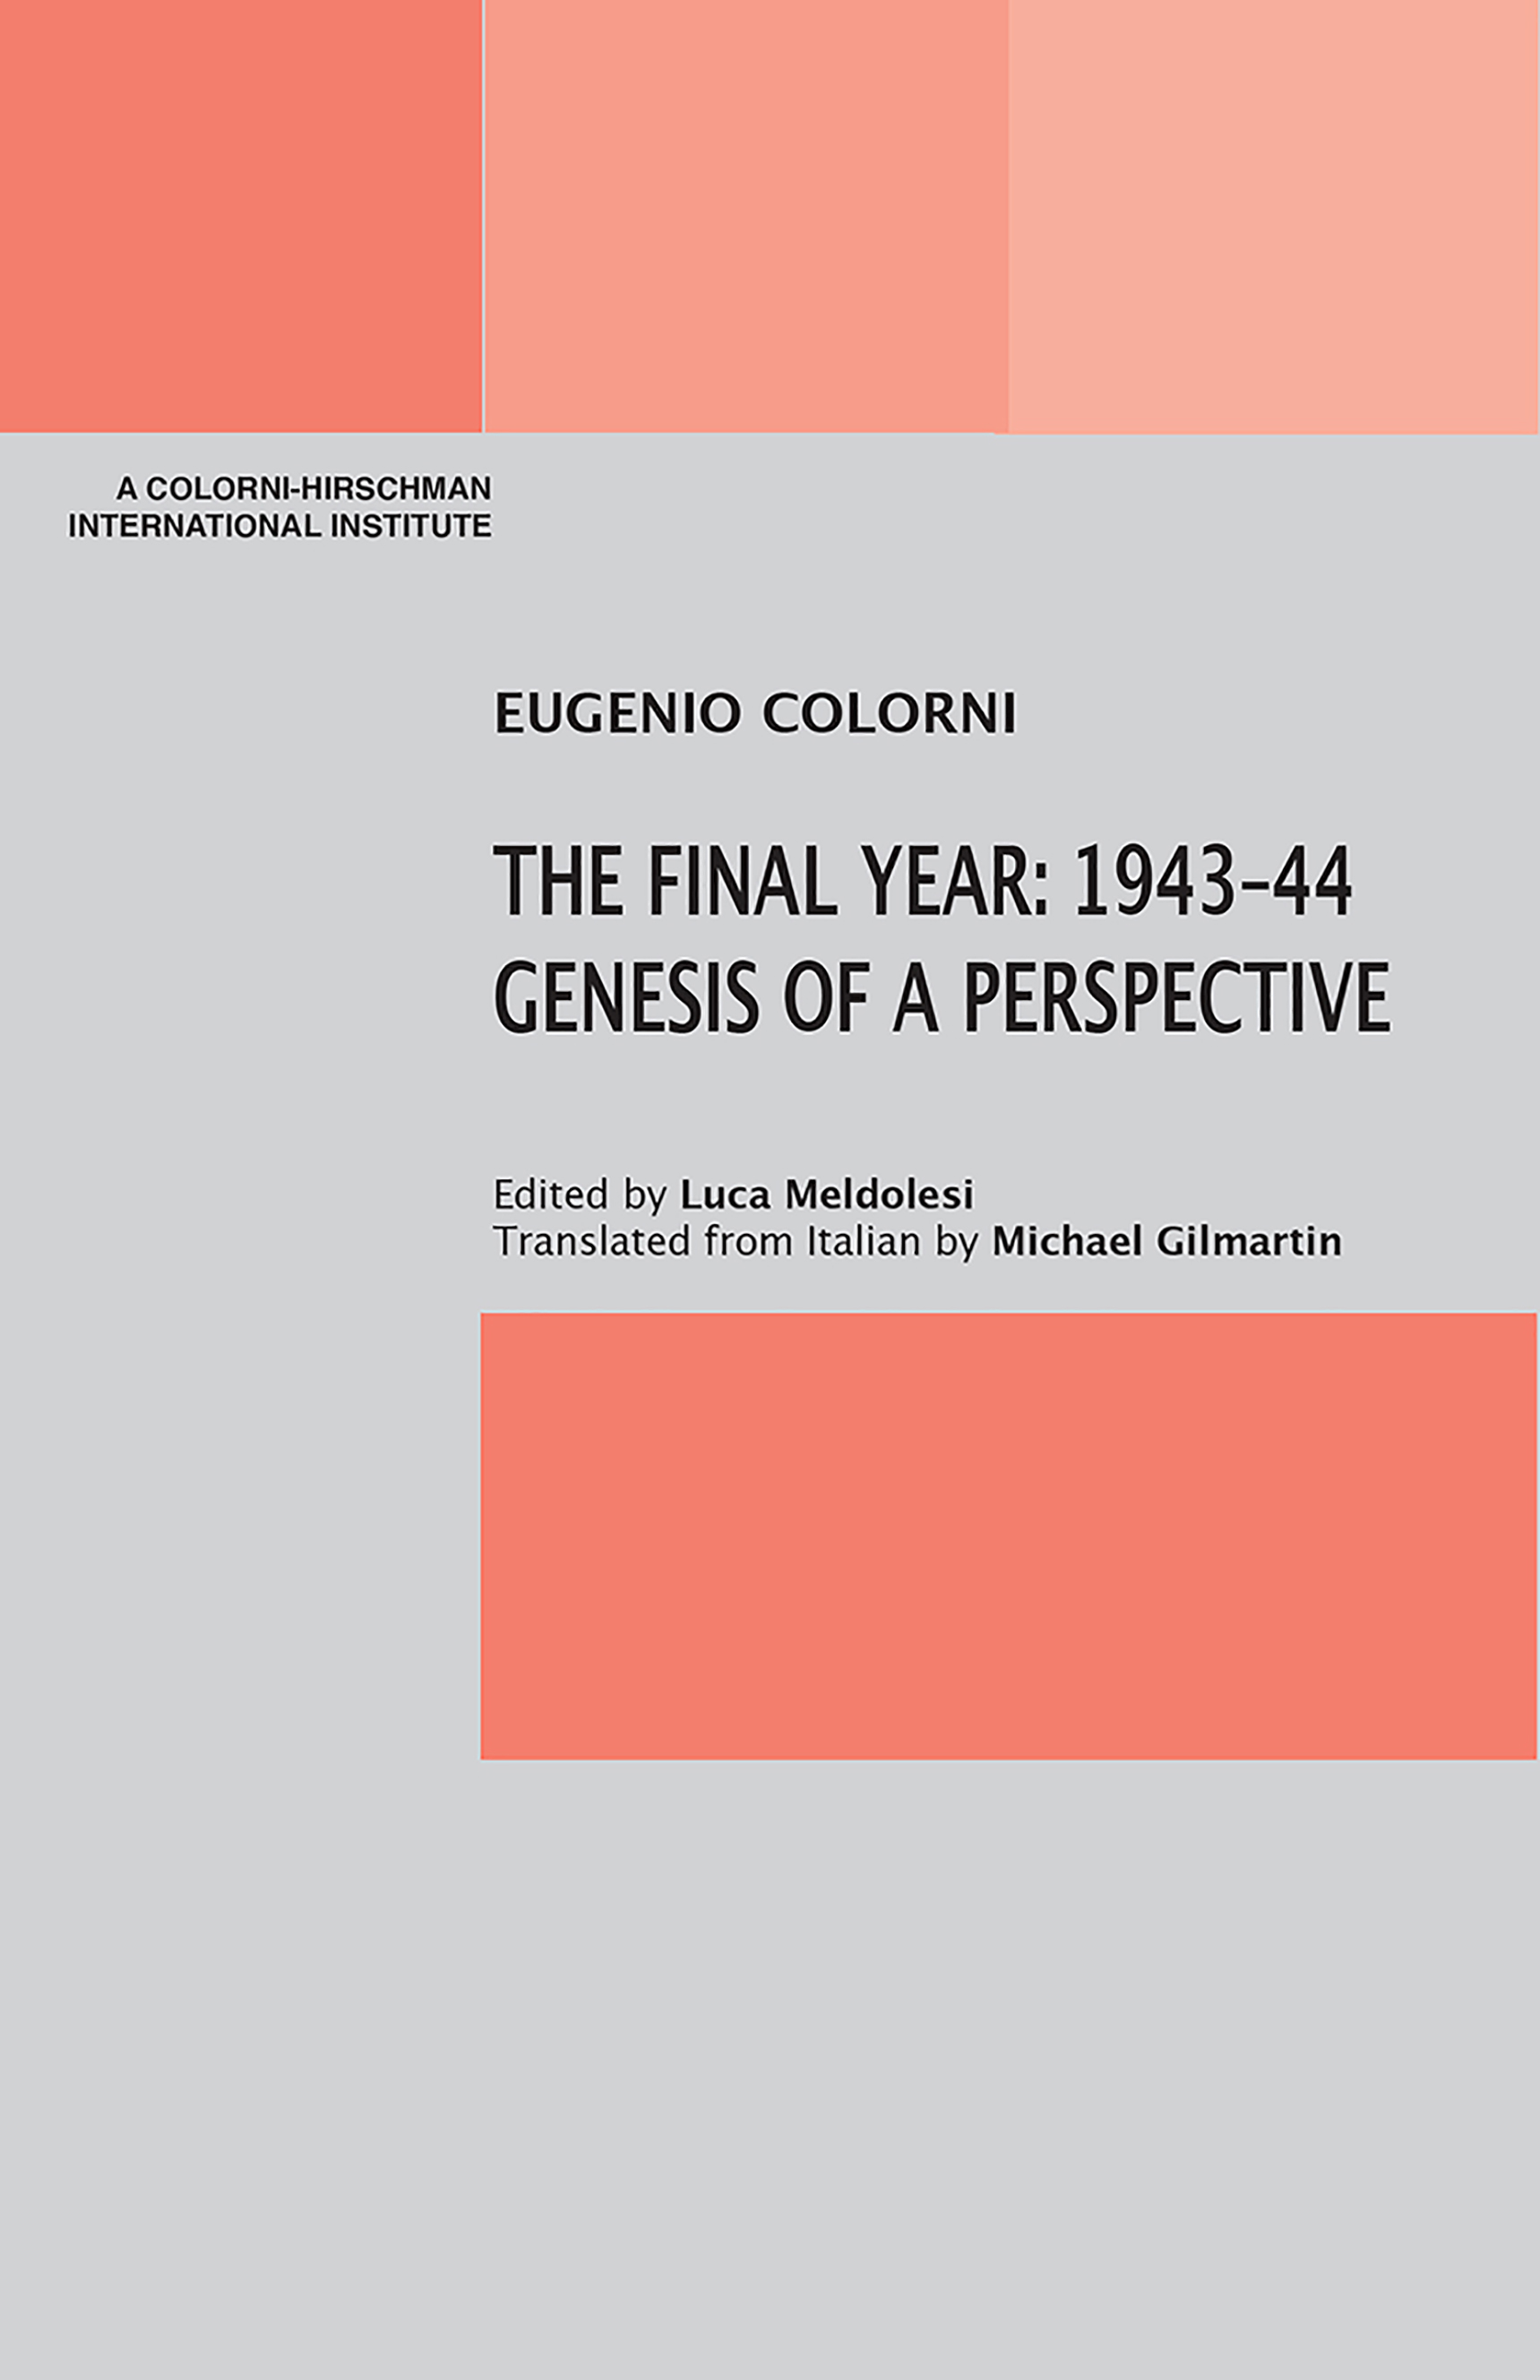 The Final Year: 1943-44 Genesis of a Perspective